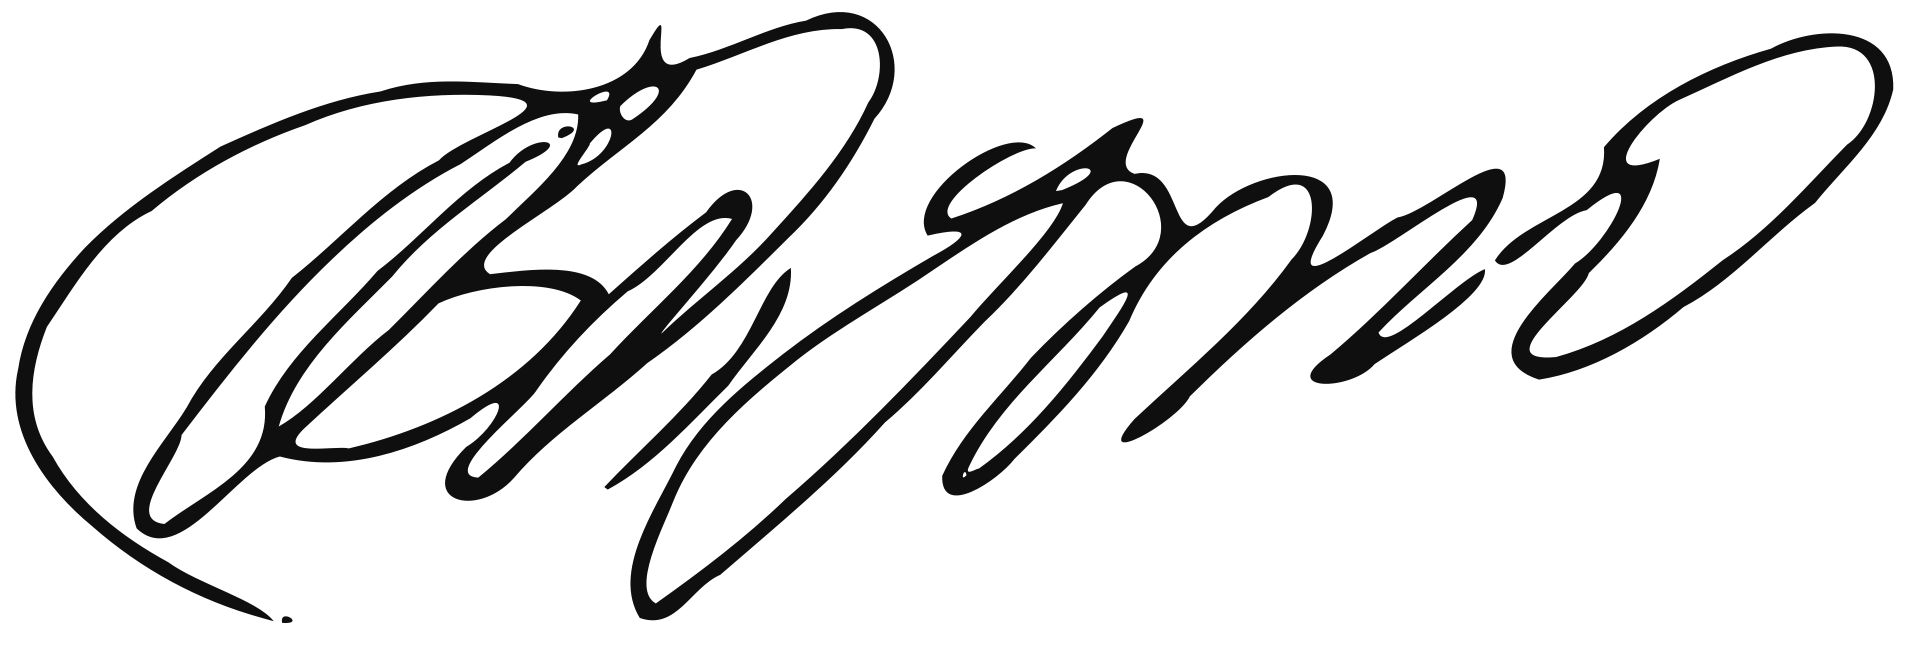 Transparent signatures bmp. File vladimir putin signature